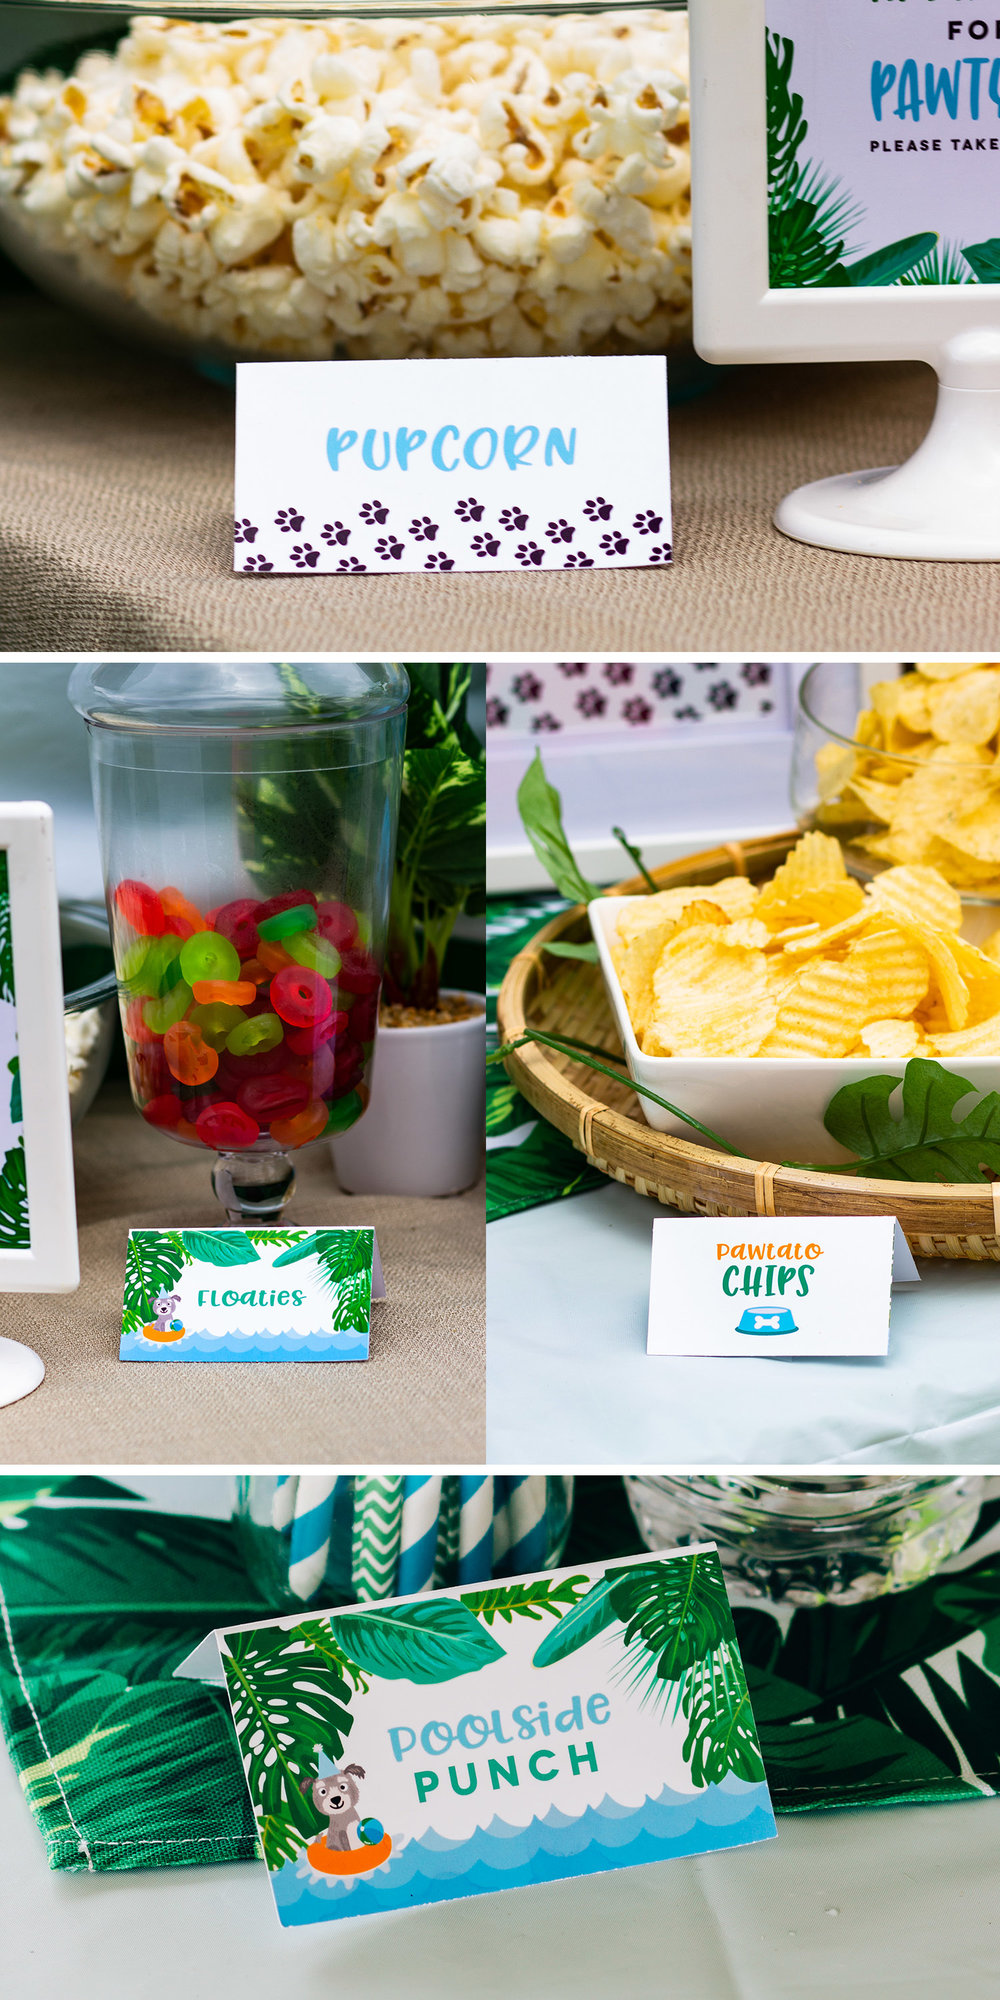 Puppy party food ideas - Pawtato Chips, Pupcorn, and more // mkkmdesigns